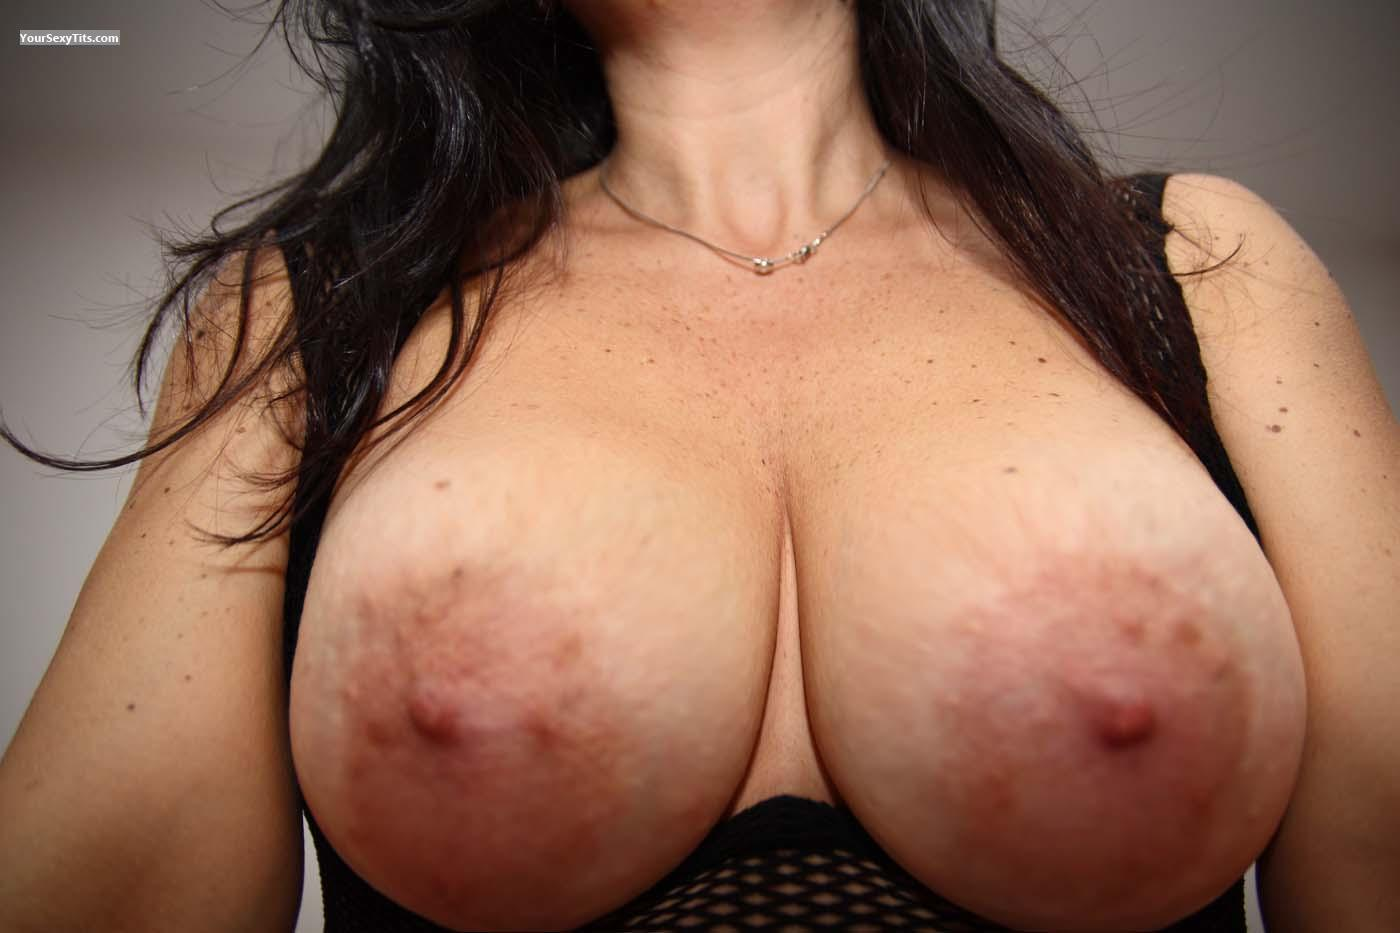 Tit Flash: Big Tits - Laura_max from Italy